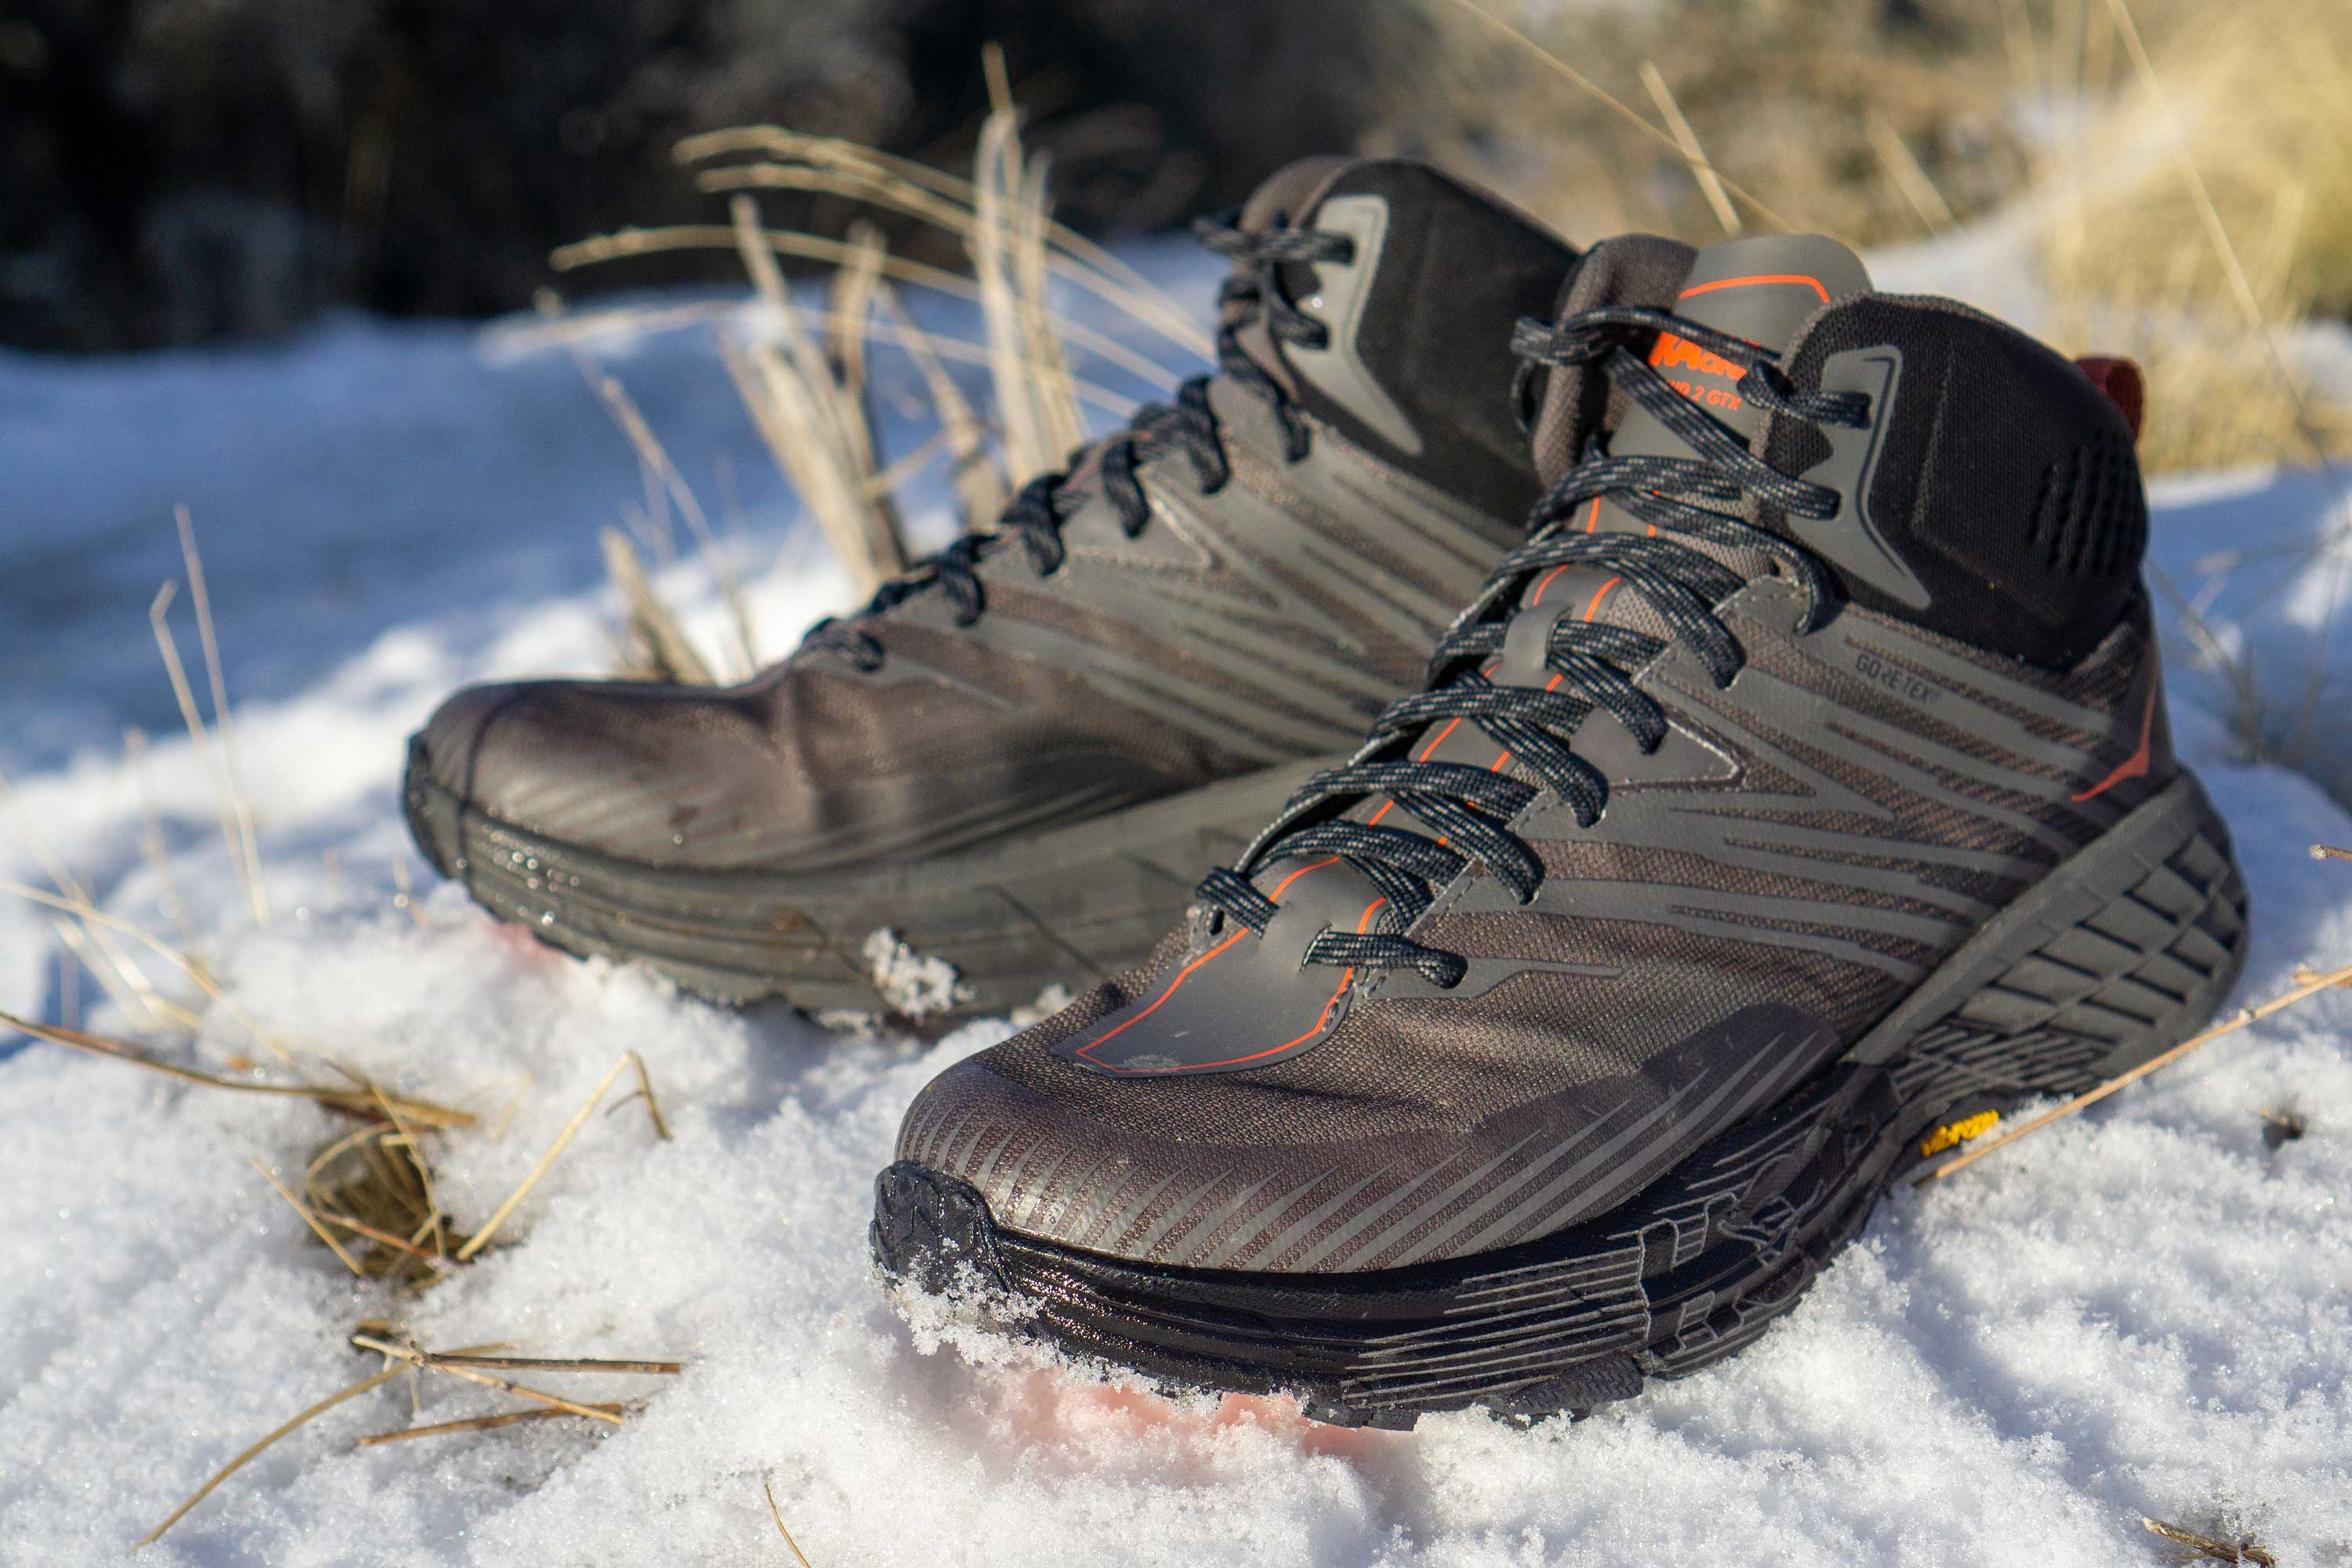 Reviewing the Hoka One One Speedgoat Mid 2 GTX